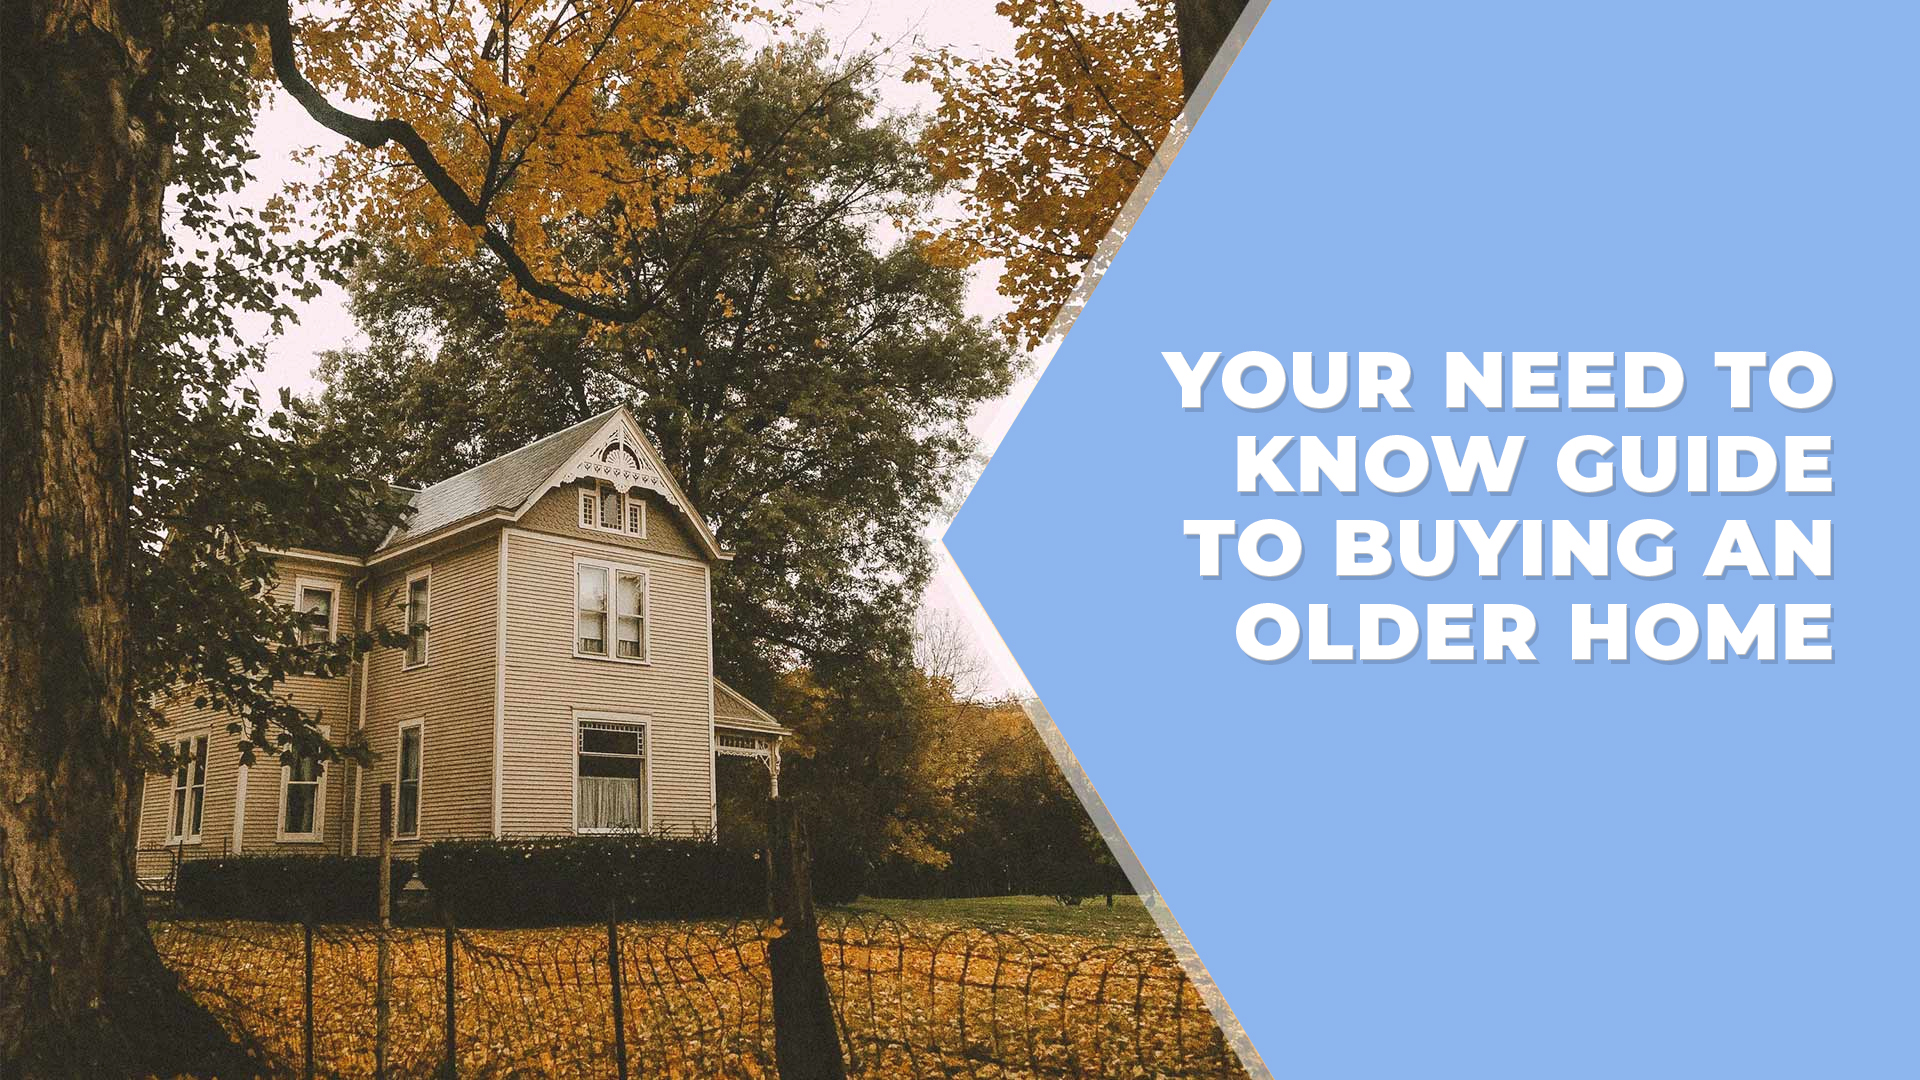 Your Need To Know Guide To Buying An Older Home.jpg